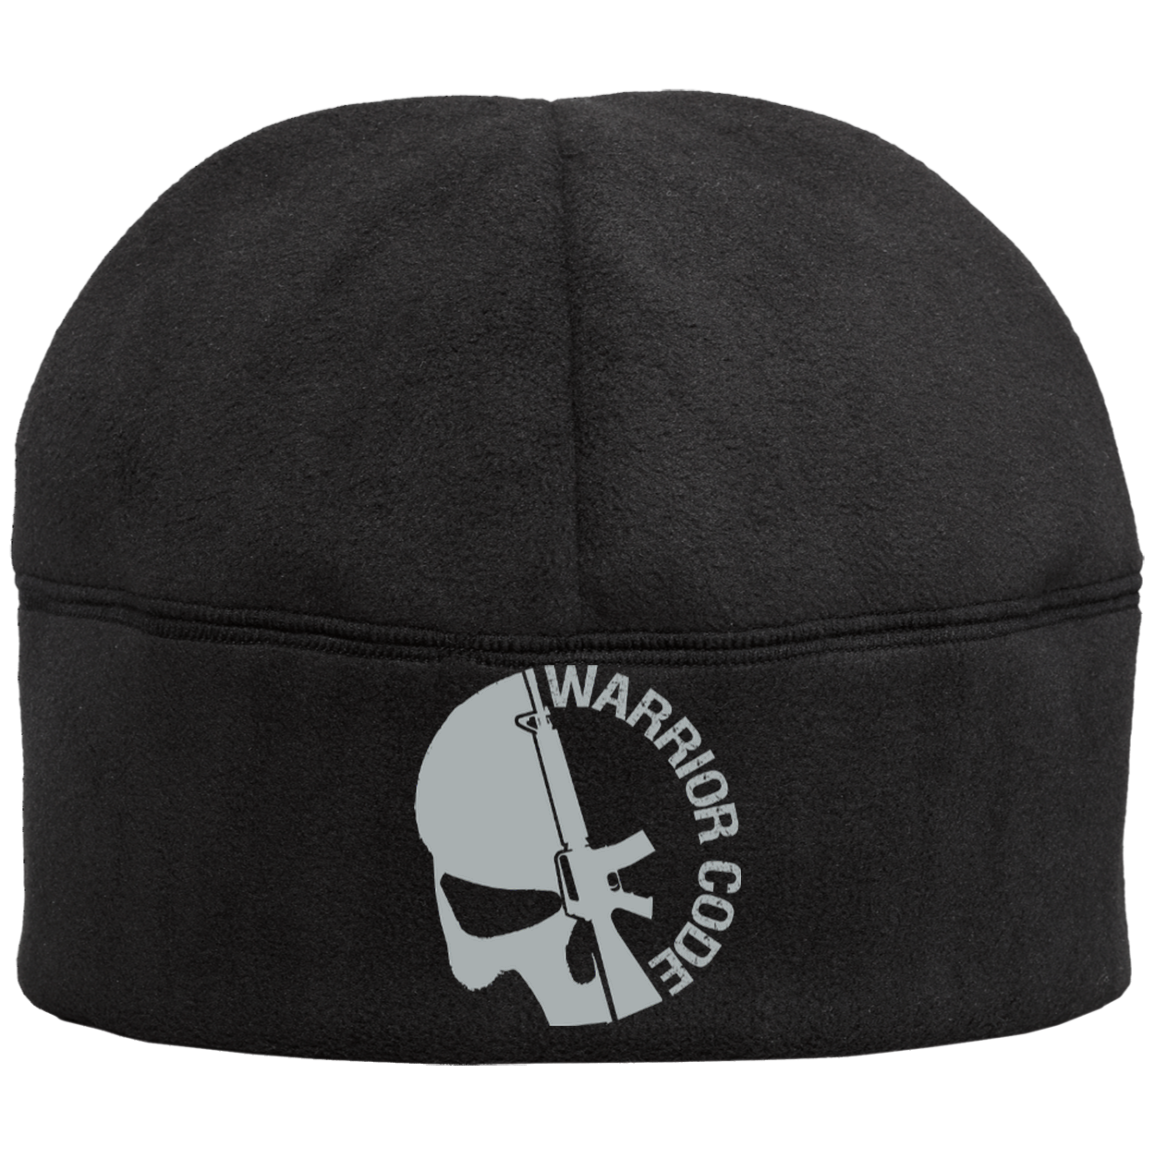 Skull & Gun Fleece Beanie - Warrior Code